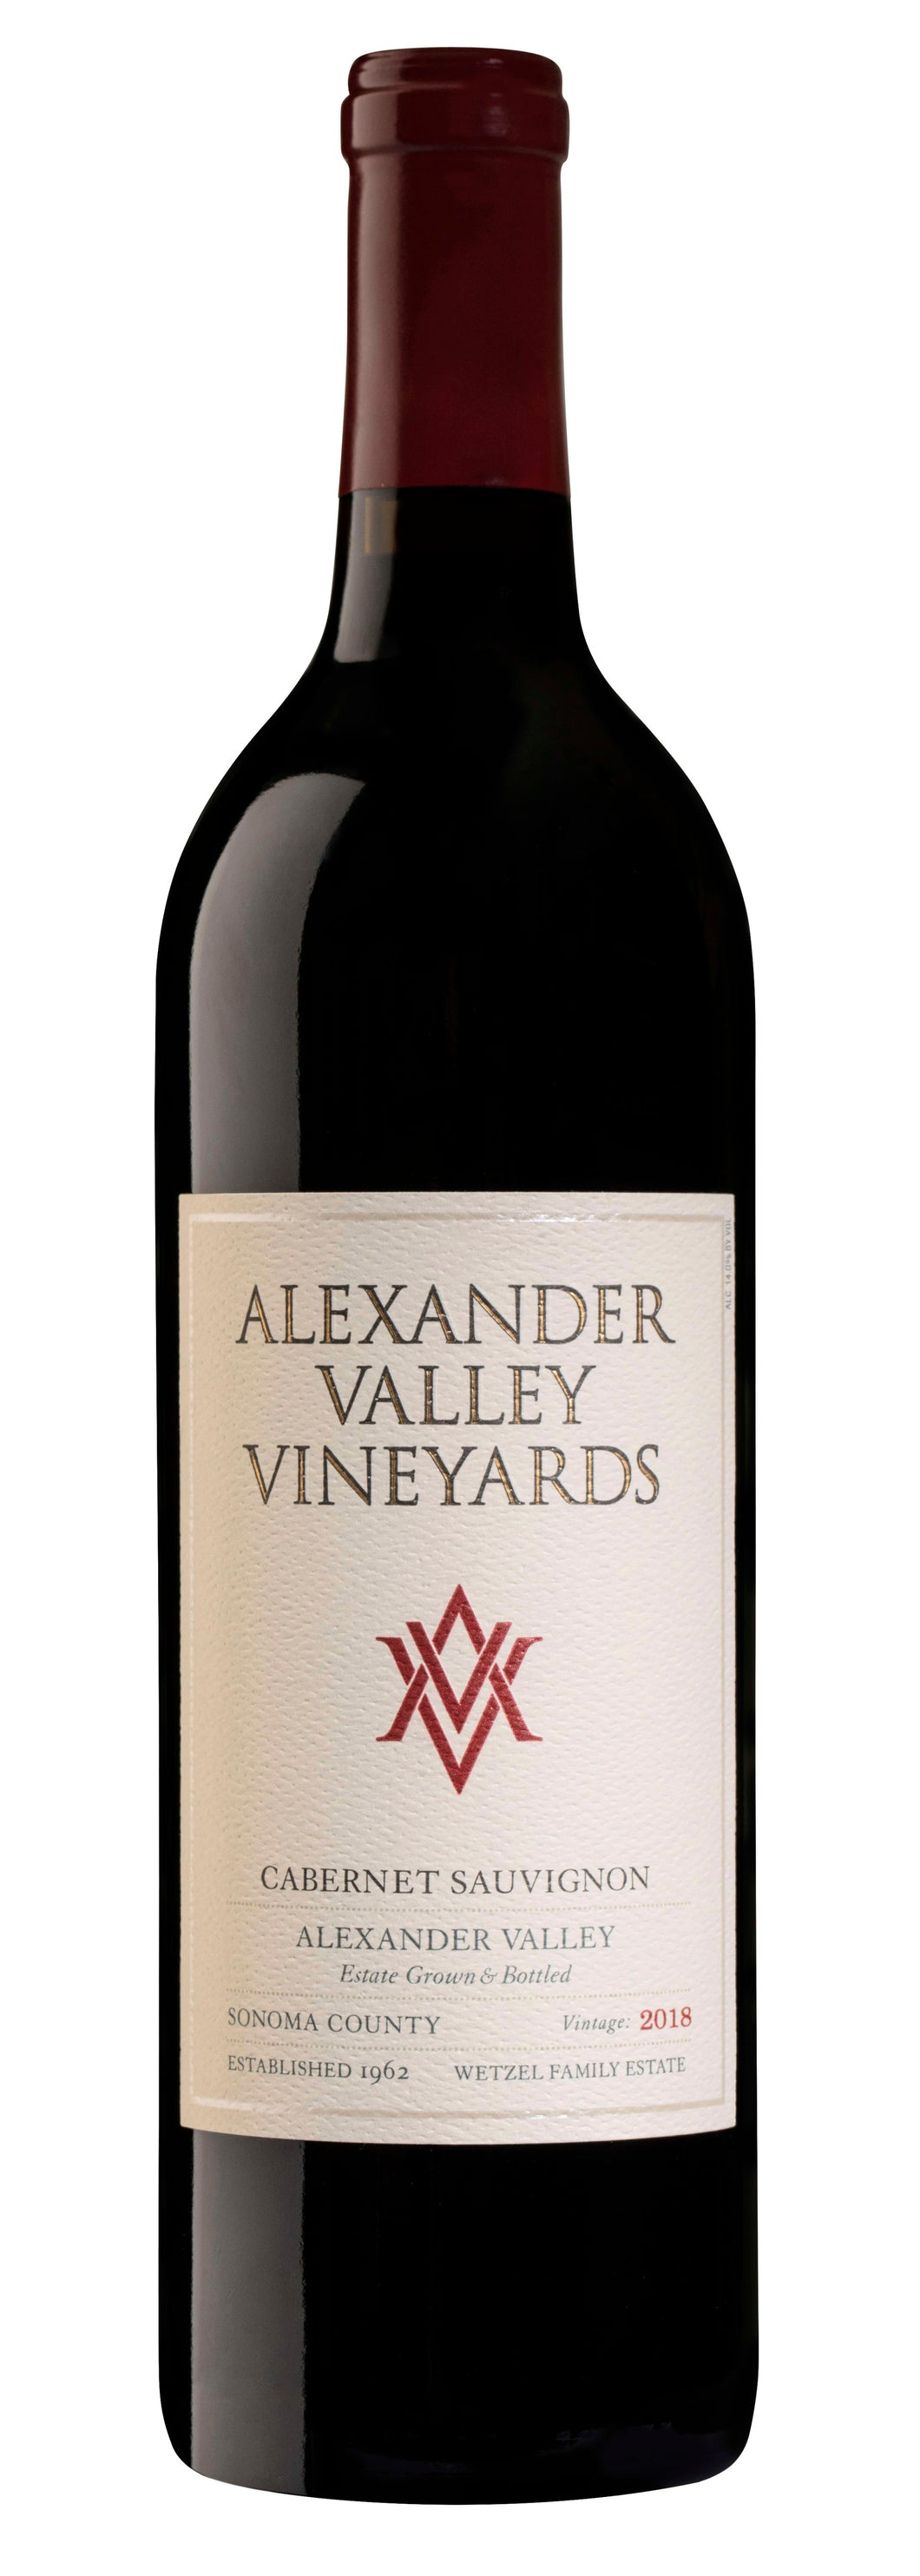 Alexander Valley Vineyards Cabernet Sauvignon 2018